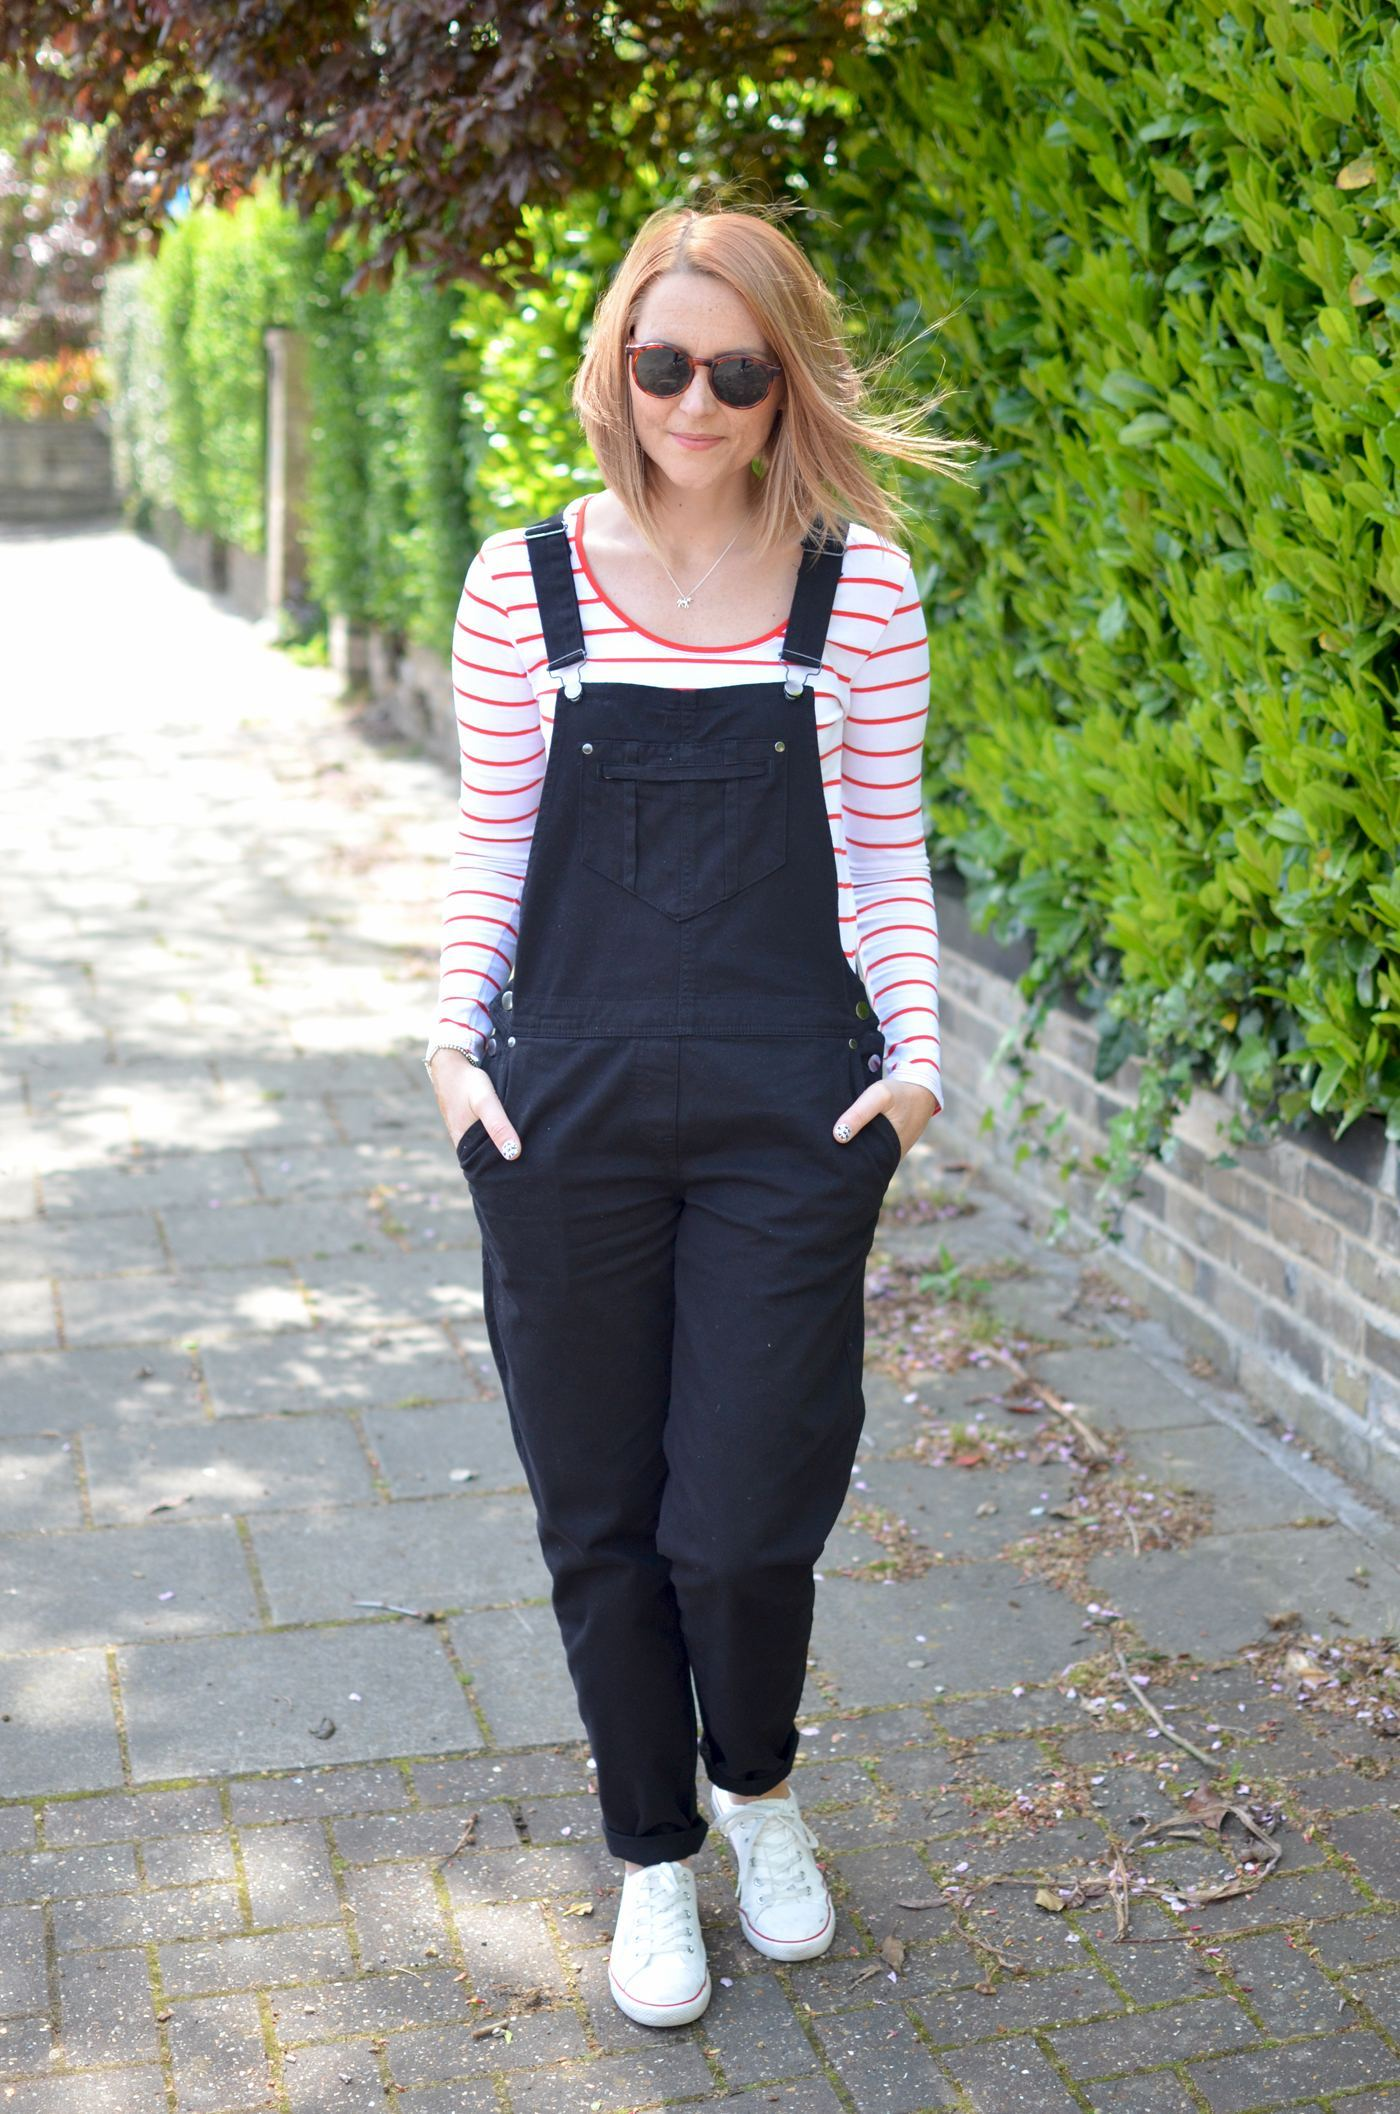 dungarees and stripey top outfit